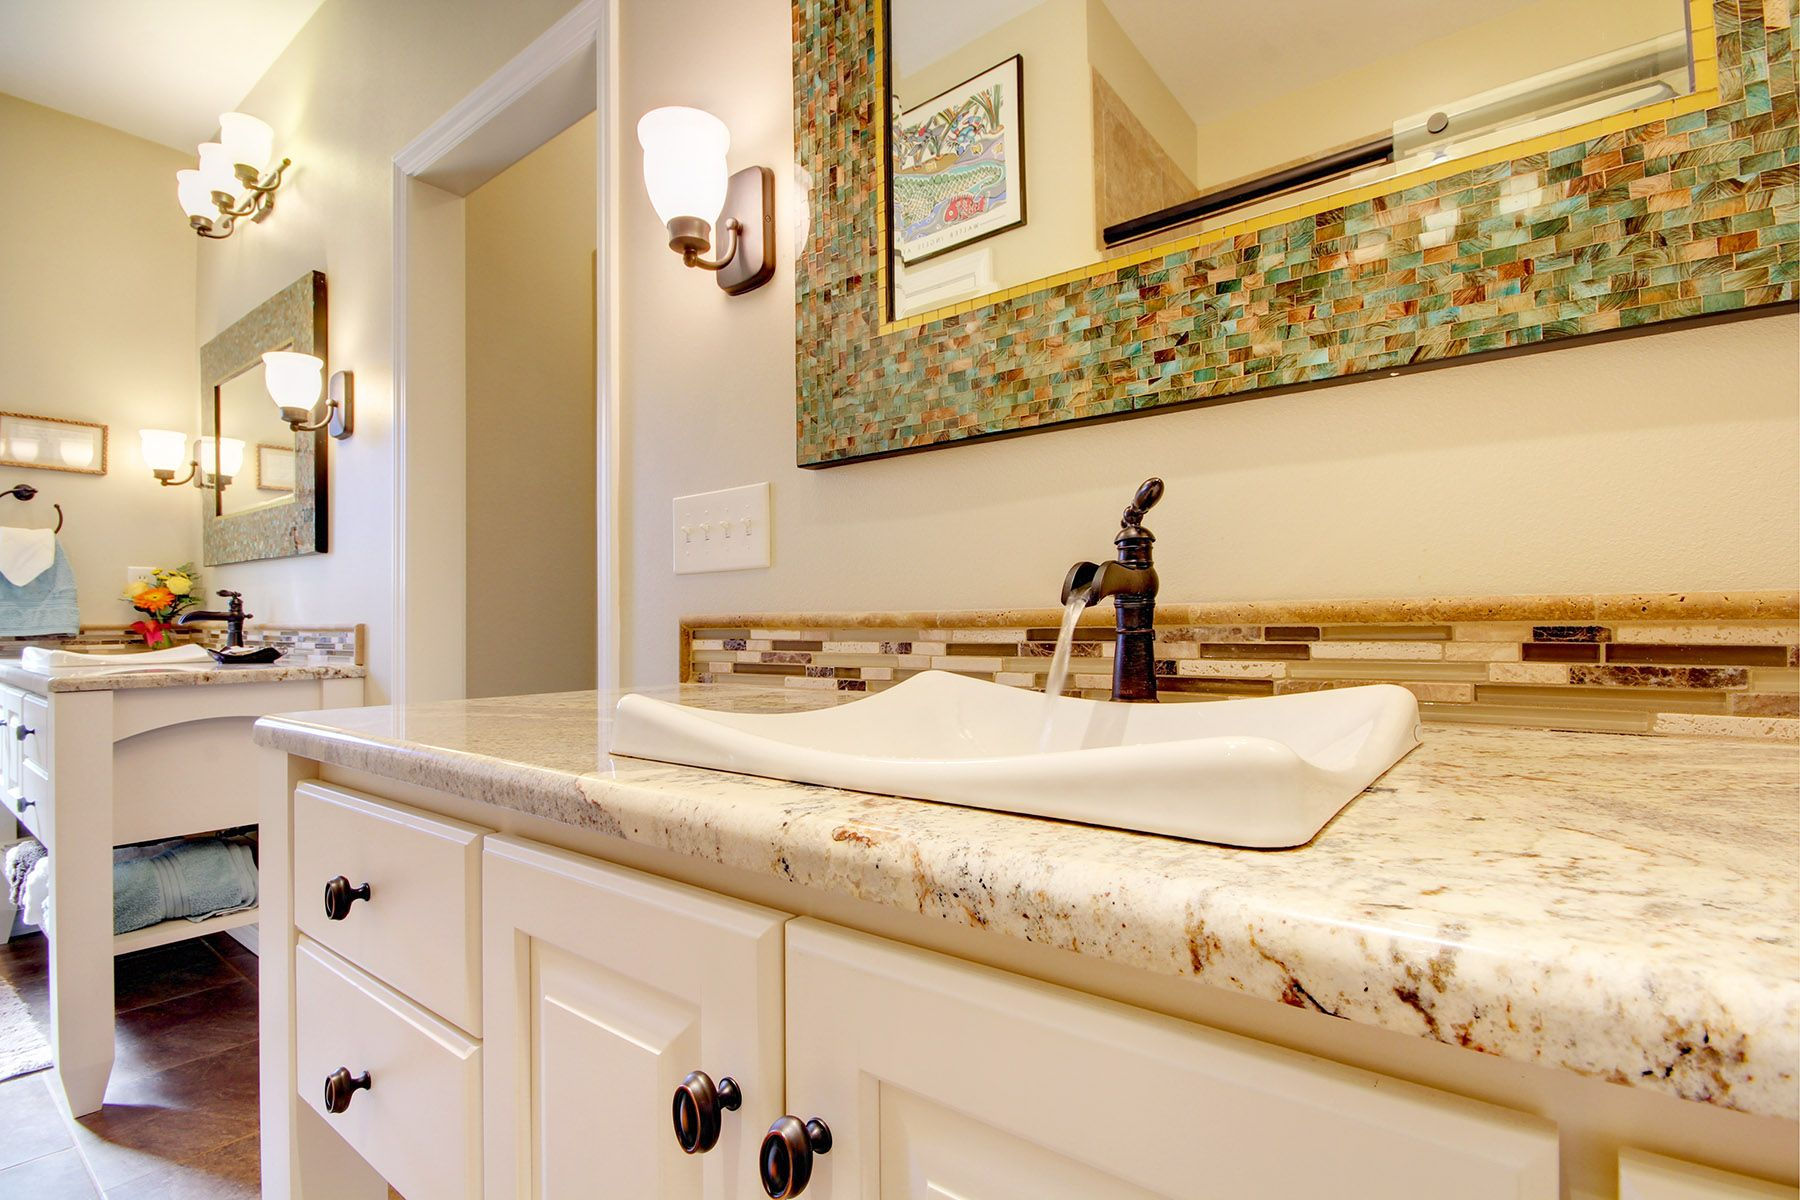 A Bathroom Remodel In Pensacola Florida Results In A